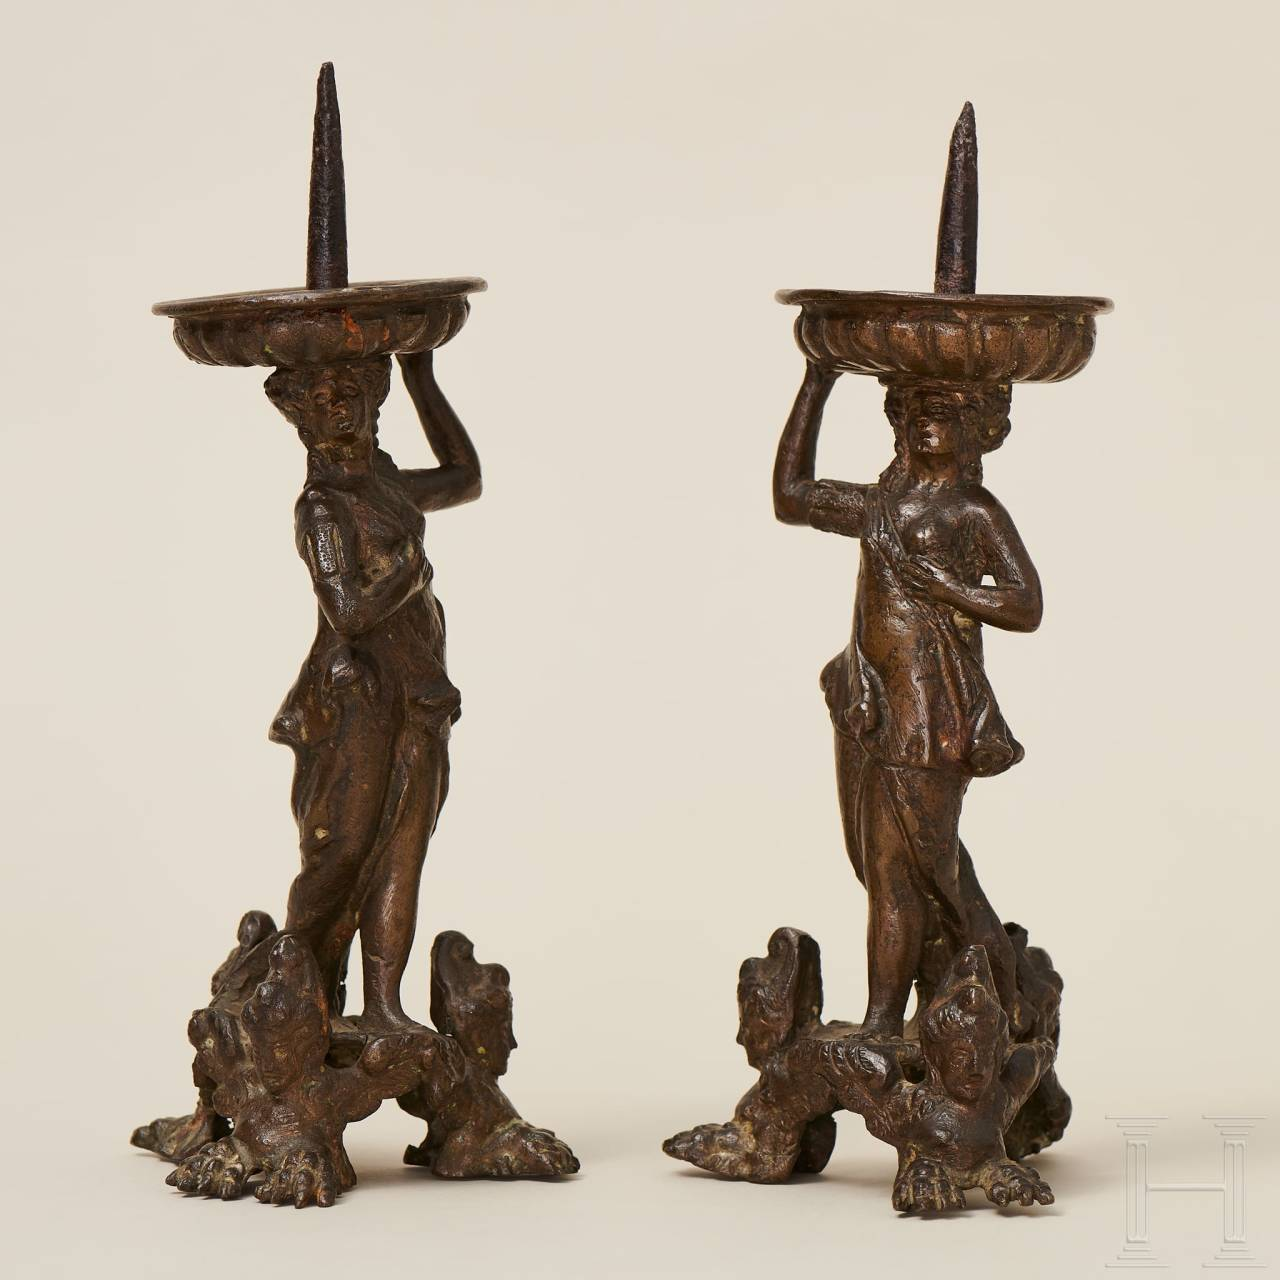 A pair of Italian figurative candle holders in bronze, 16th century